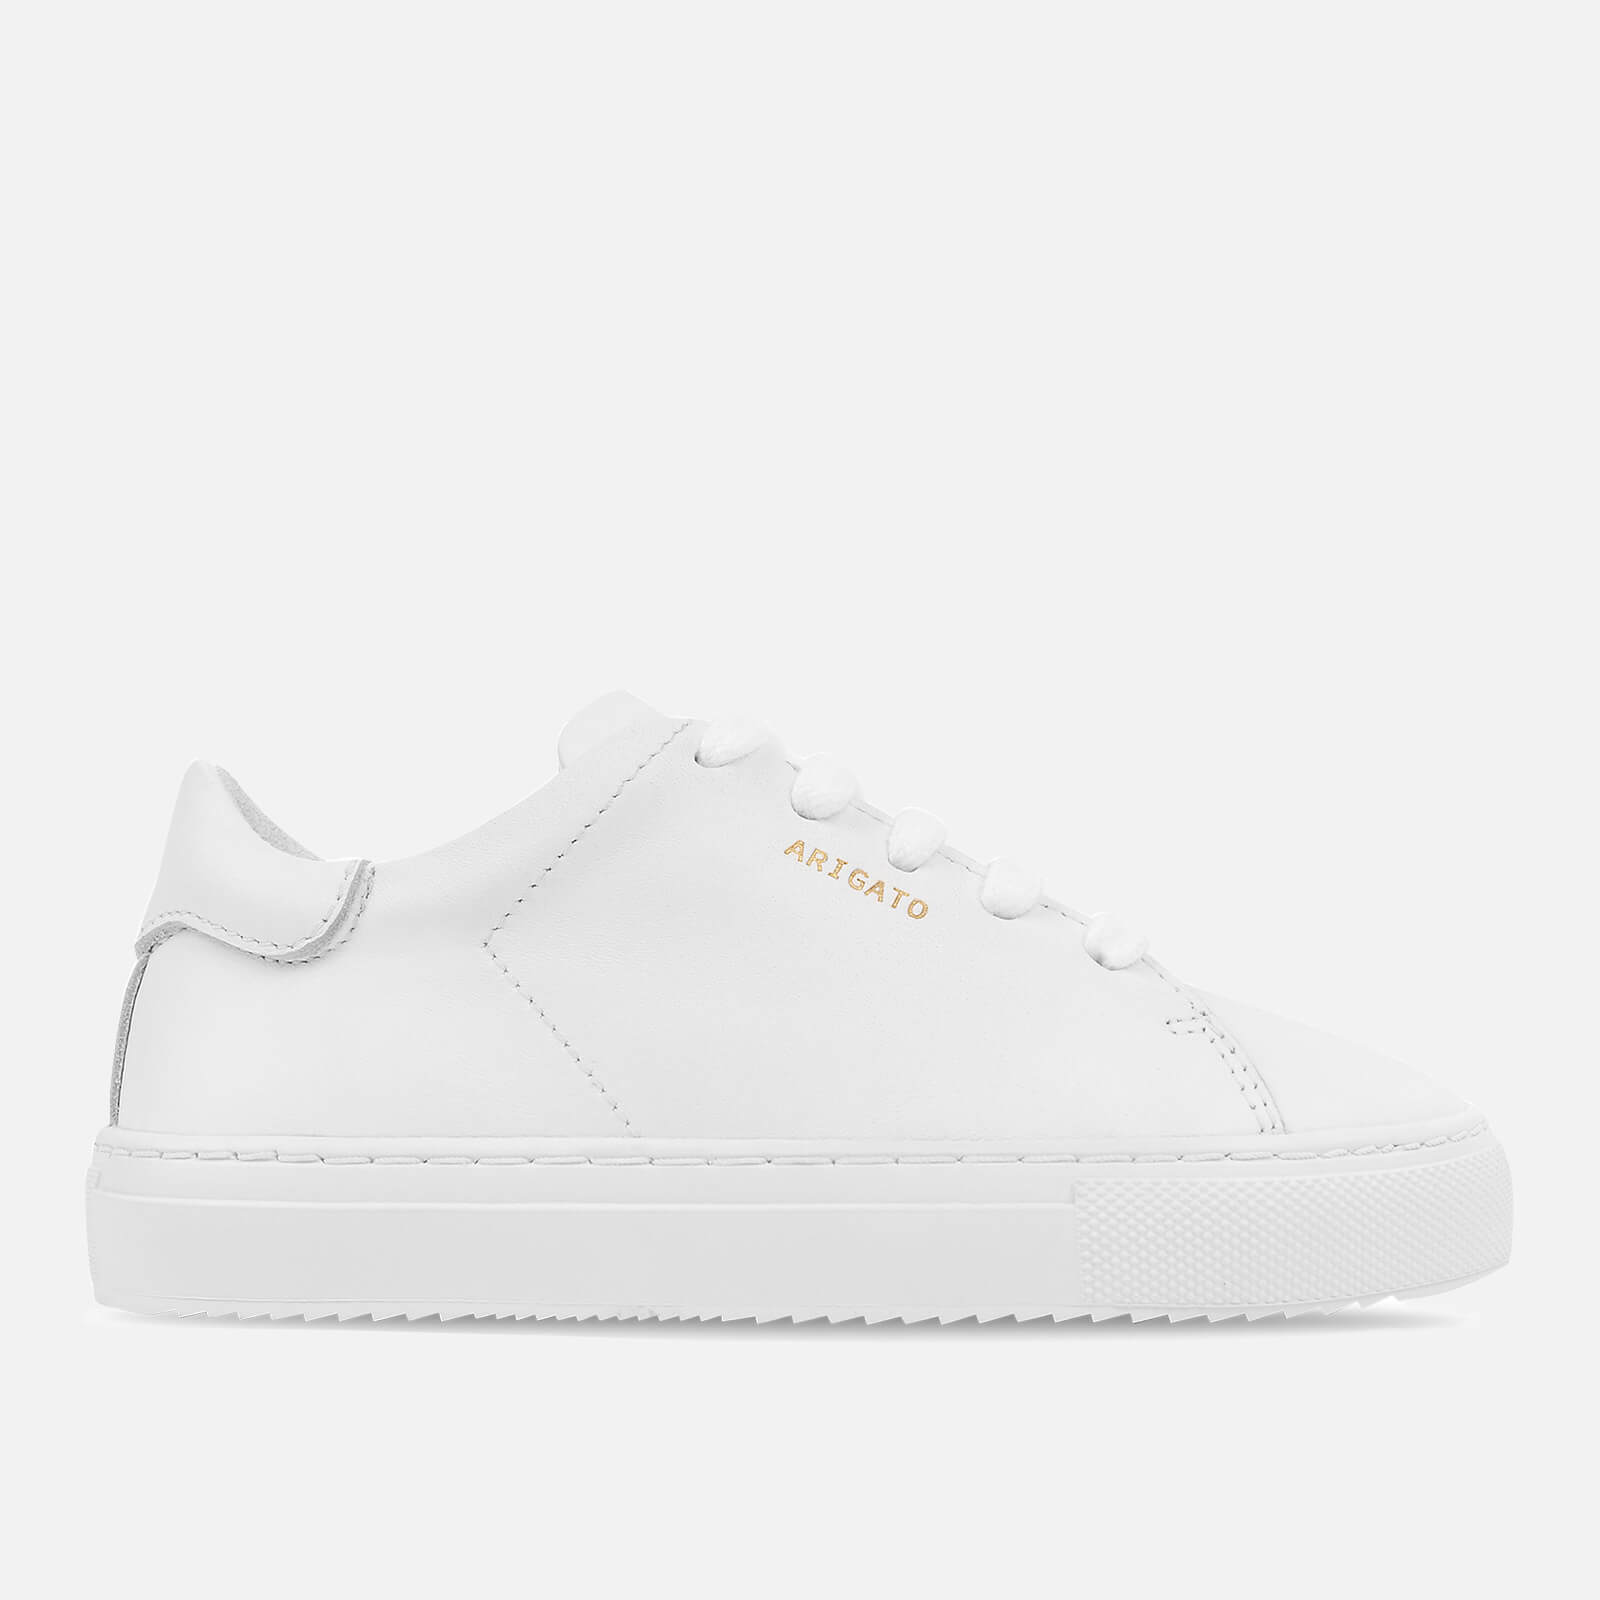 Axel Arigato Kids' Clean 90 Leather Cupsole Trainers - White - UK 2 Kids